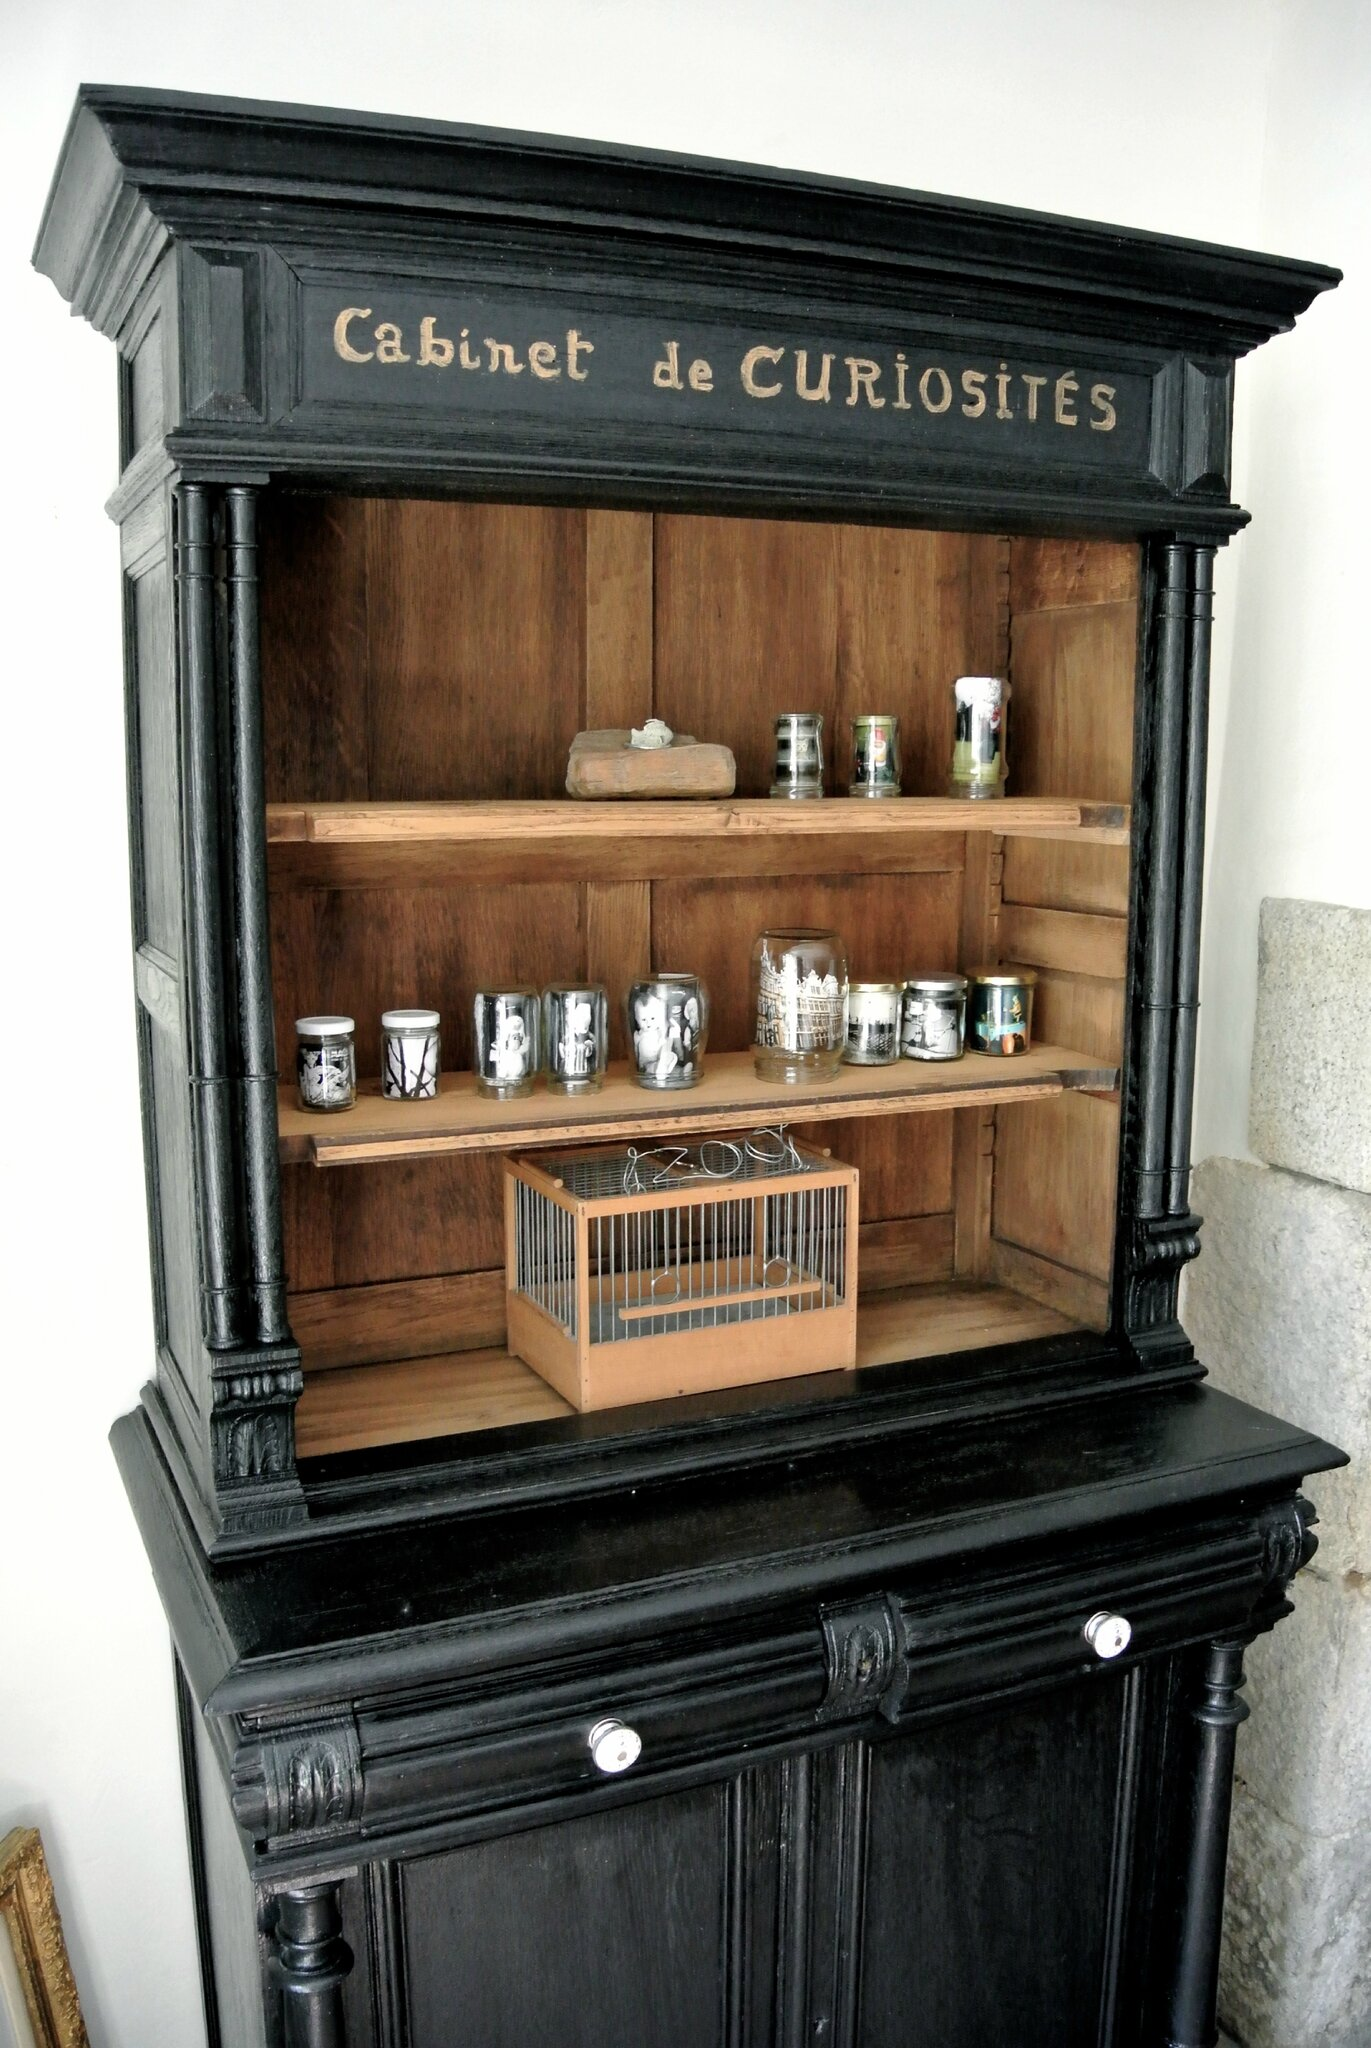 Cabinet de curiosit dr le meuble du photographe photo for Site de meuble